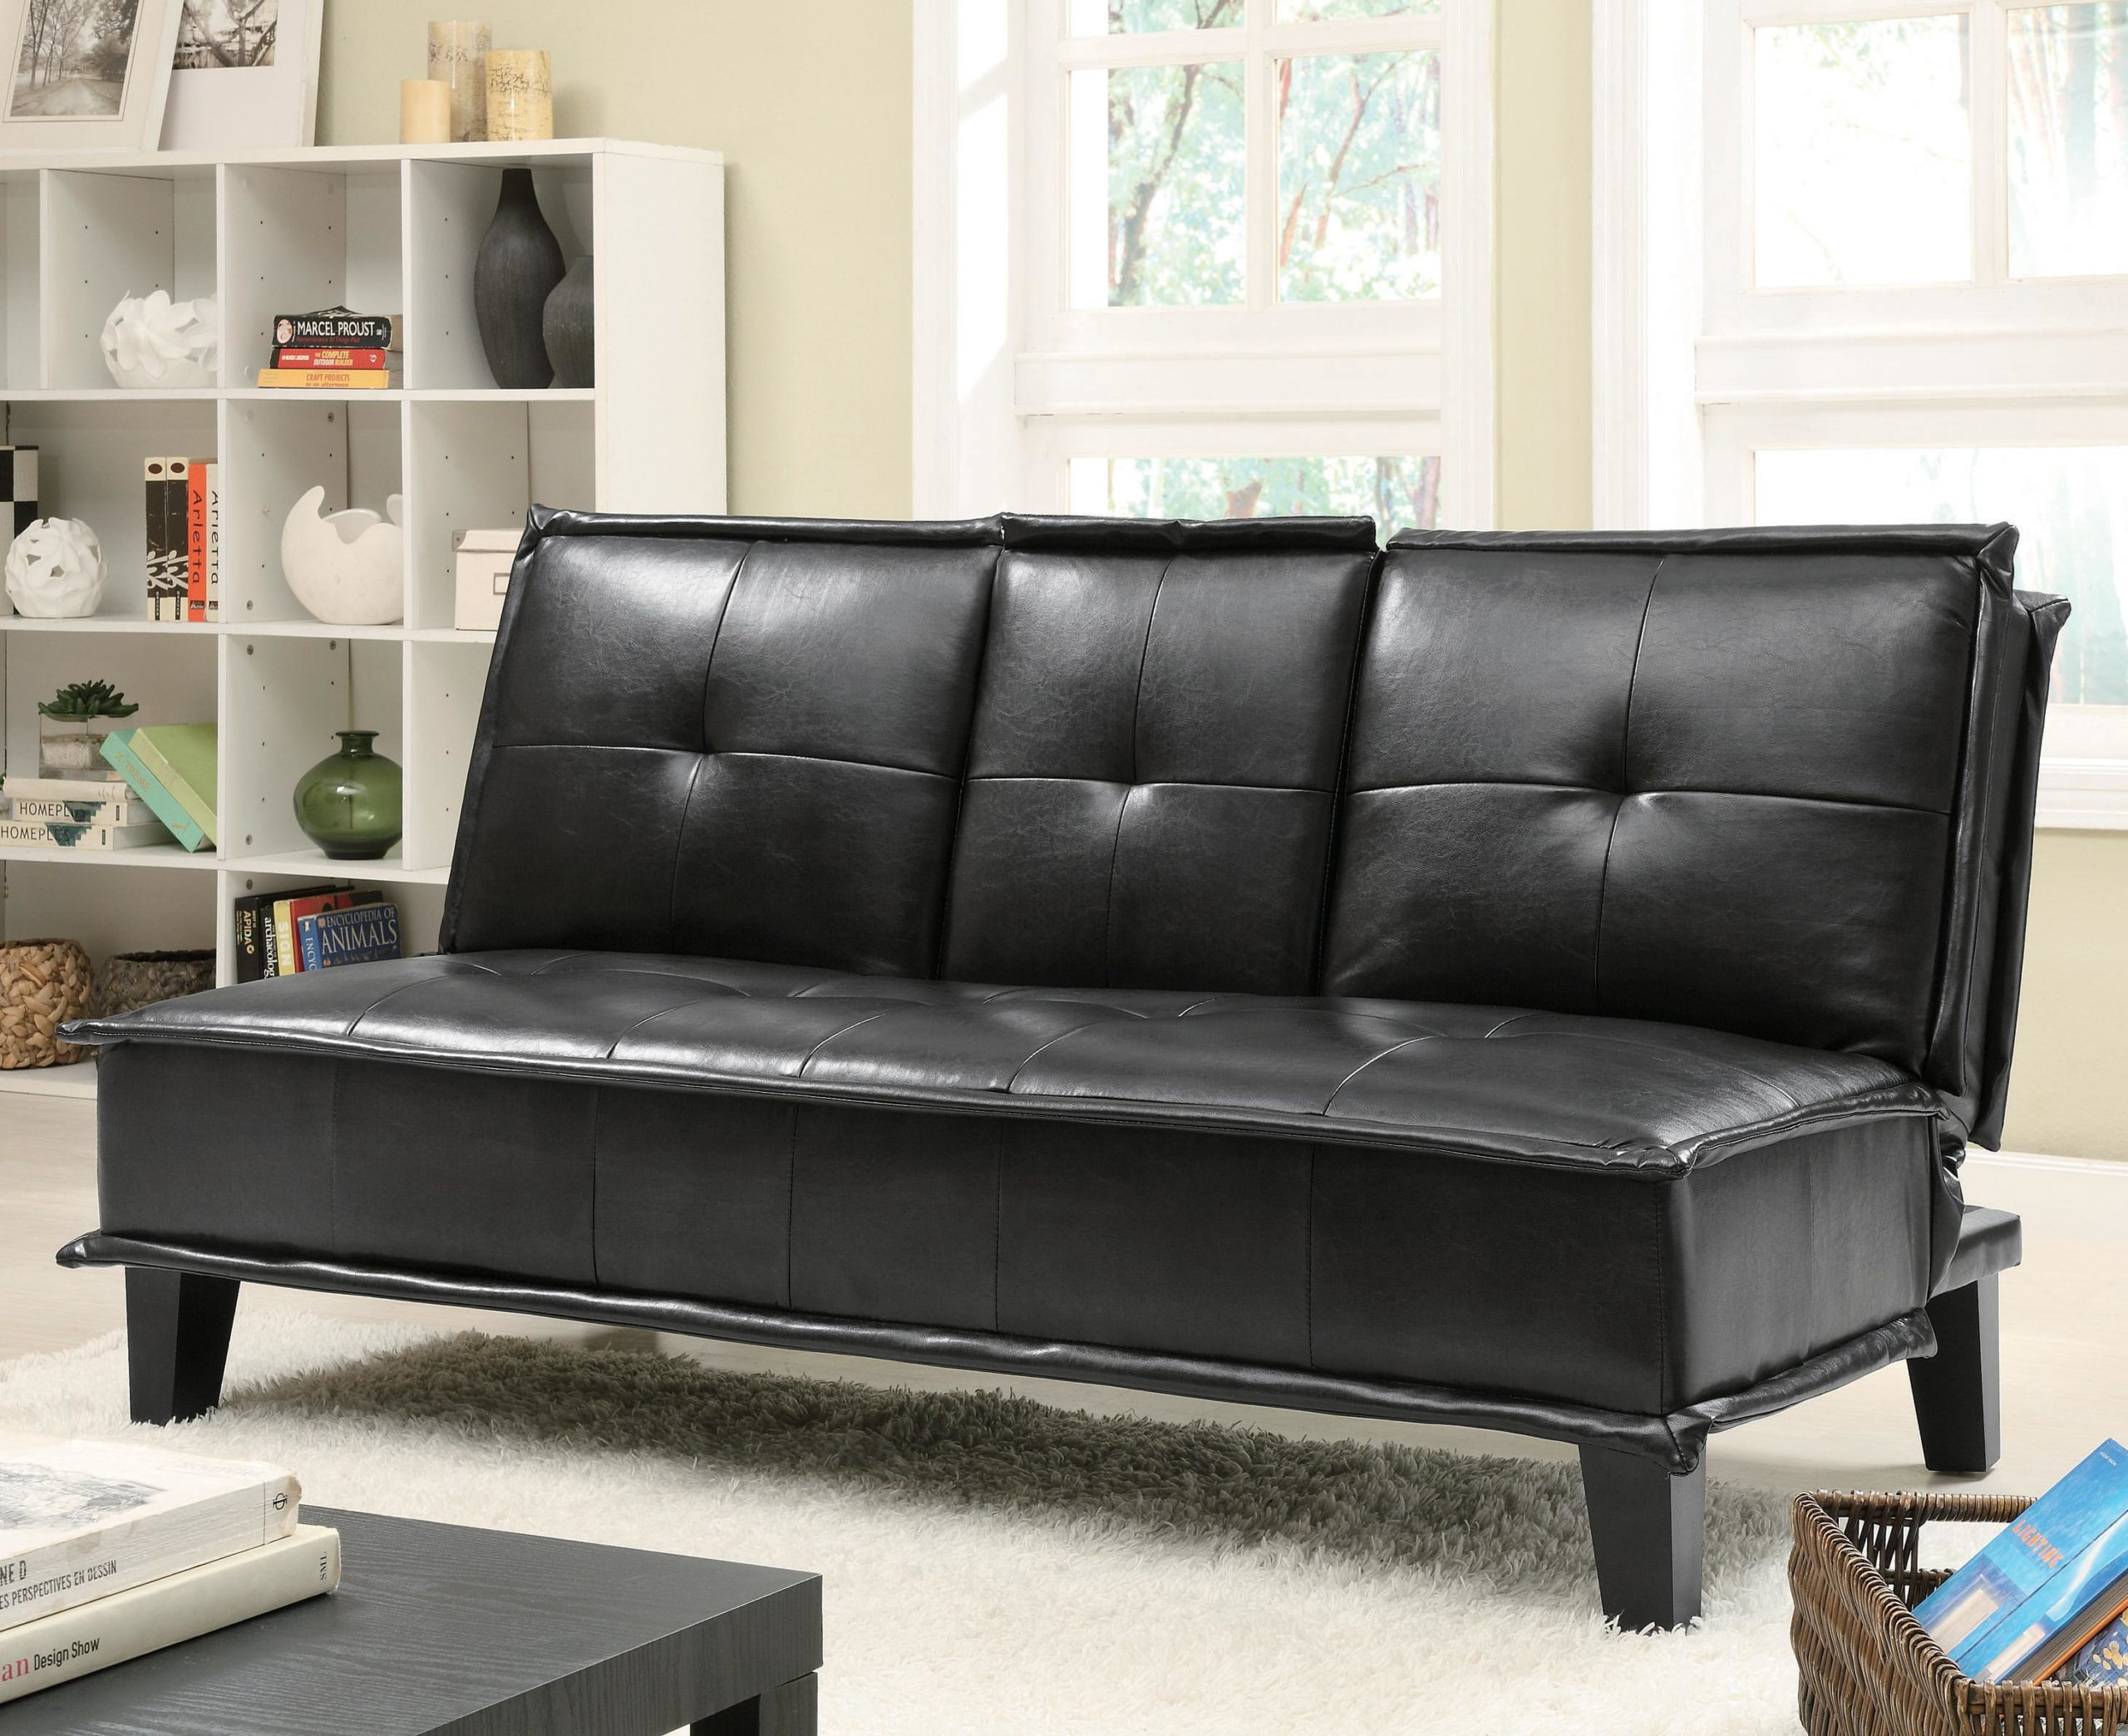 Black Contemporary Vinyl Sofa Bed with Drop Down Table